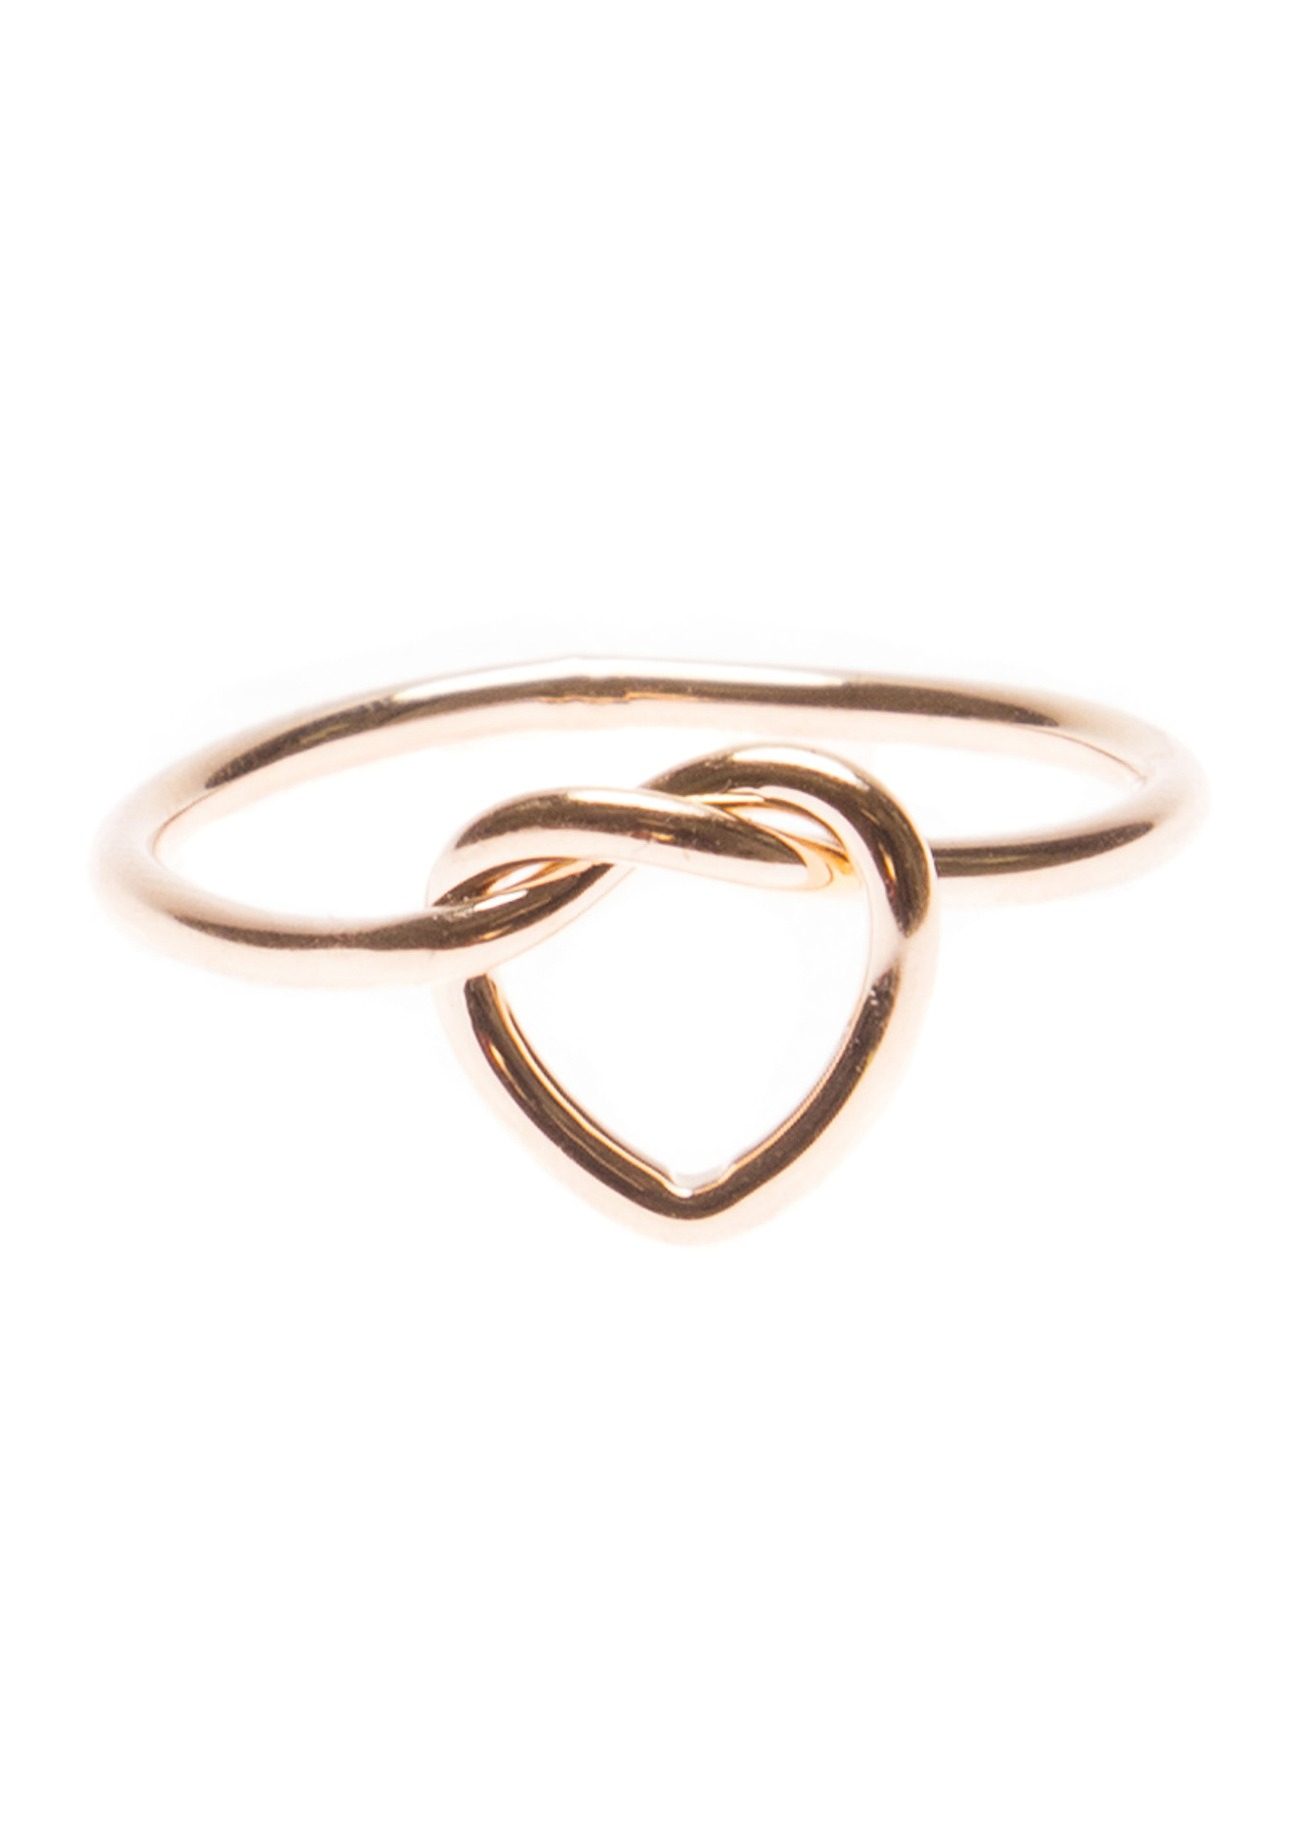 Minimalist Heart Knot Ring For Most Recently Released Knotted Hearts Rings (View 10 of 25)